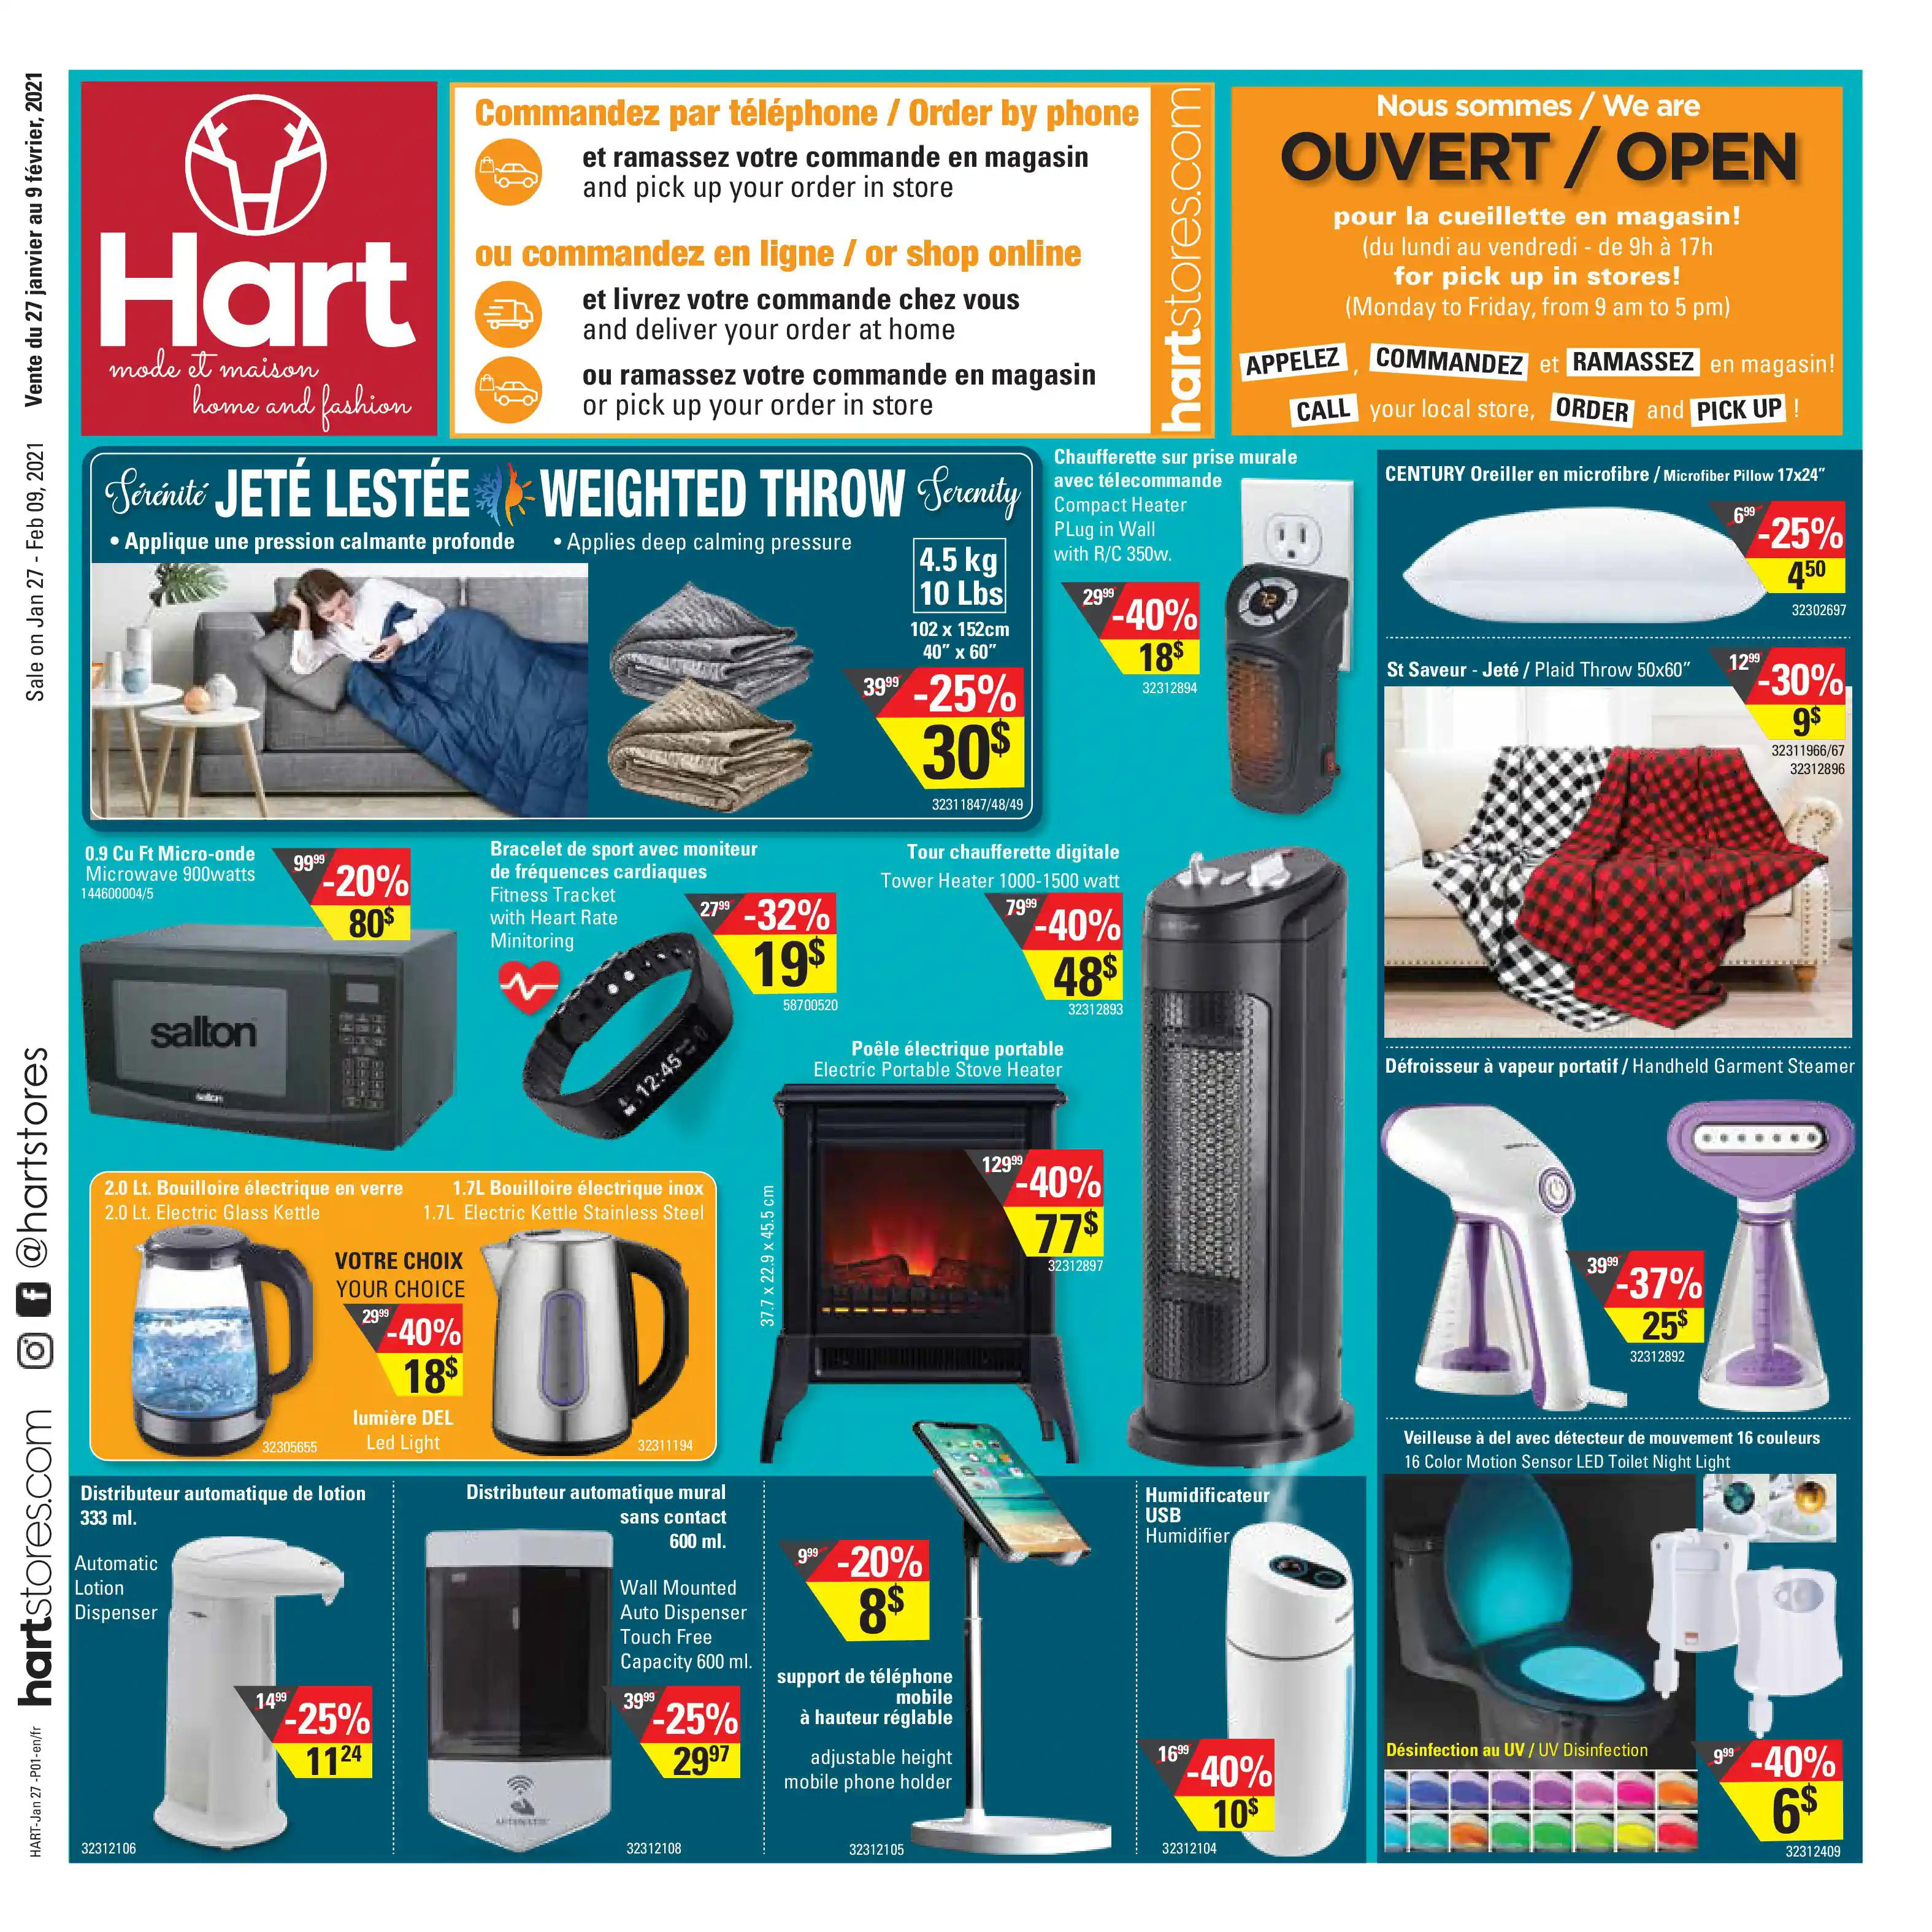 Hart - Weekly Flyer Specials